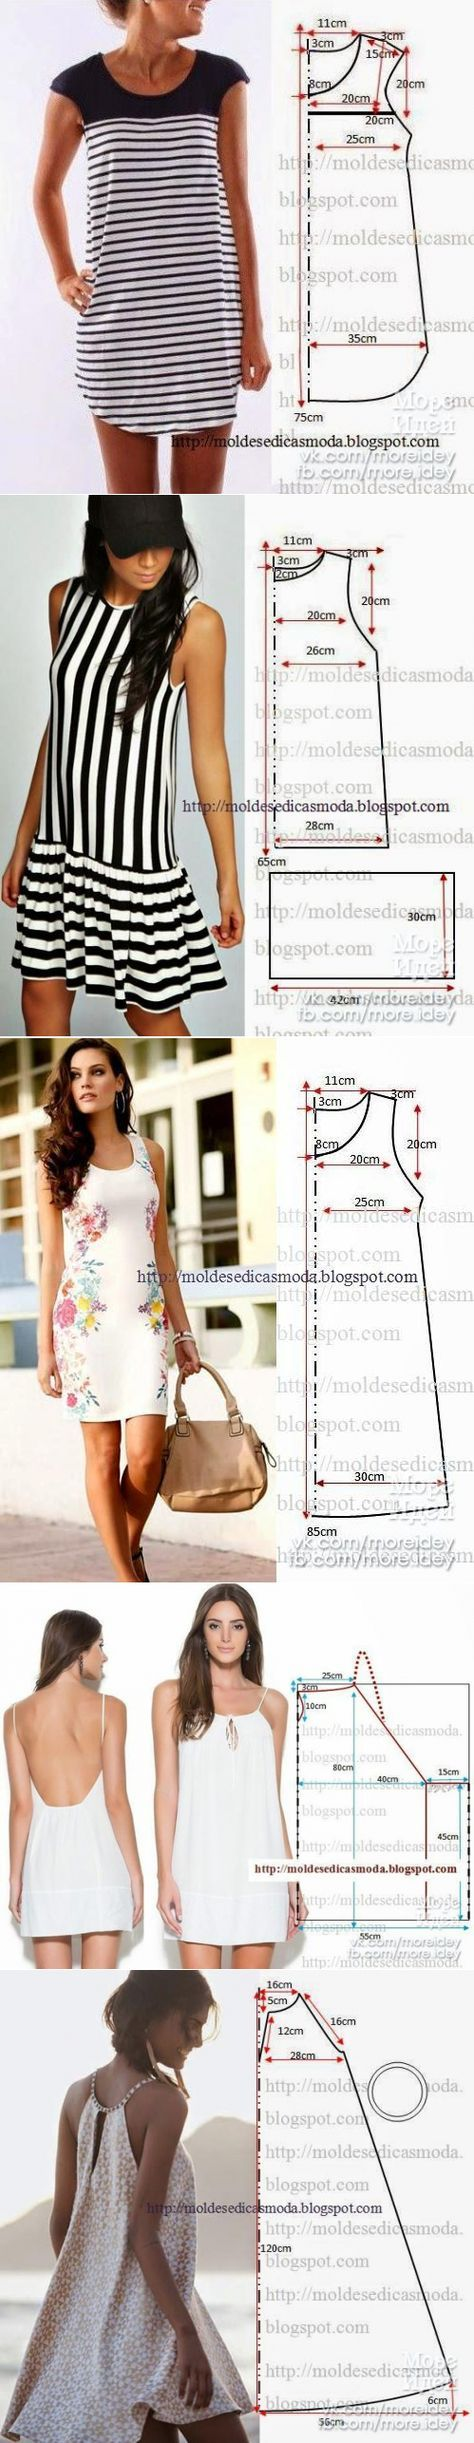 SEW QUICK SUMMER DRESSm a Fan of the Standard Sheath (the possibilities!!) and the Spaghetti Strap versions, How about You?~~https://www.pinterest.cim/bonniebuchanan